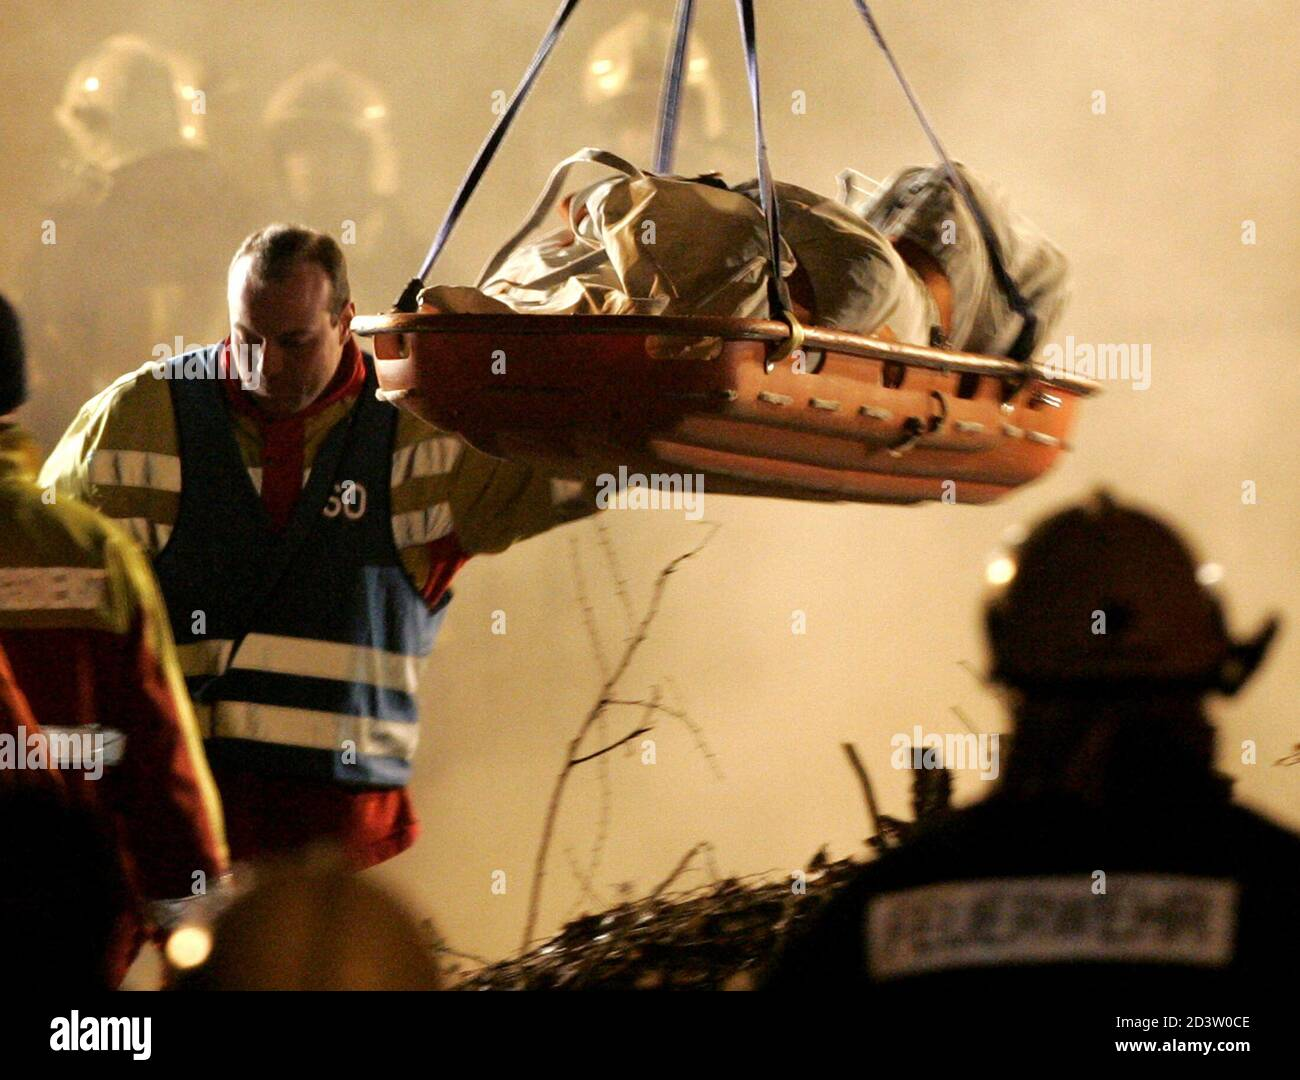 The body of a firefighter is lifted from an underground car park after the roof collapsed and buried up to seven fire fighters in the town of Gretzenbach between the cities of Basel and Zurich November 27, 2004. Construction experts, earthquake rescue specialists and other fire and rescue personnel raced against time to find the men who had been battling a fire in the residential car park when the roof caved in and trapped them in its rubble. Pictures of the month November 2004 REUTERS/Ruben Sprich  RS/WS Foto Stock